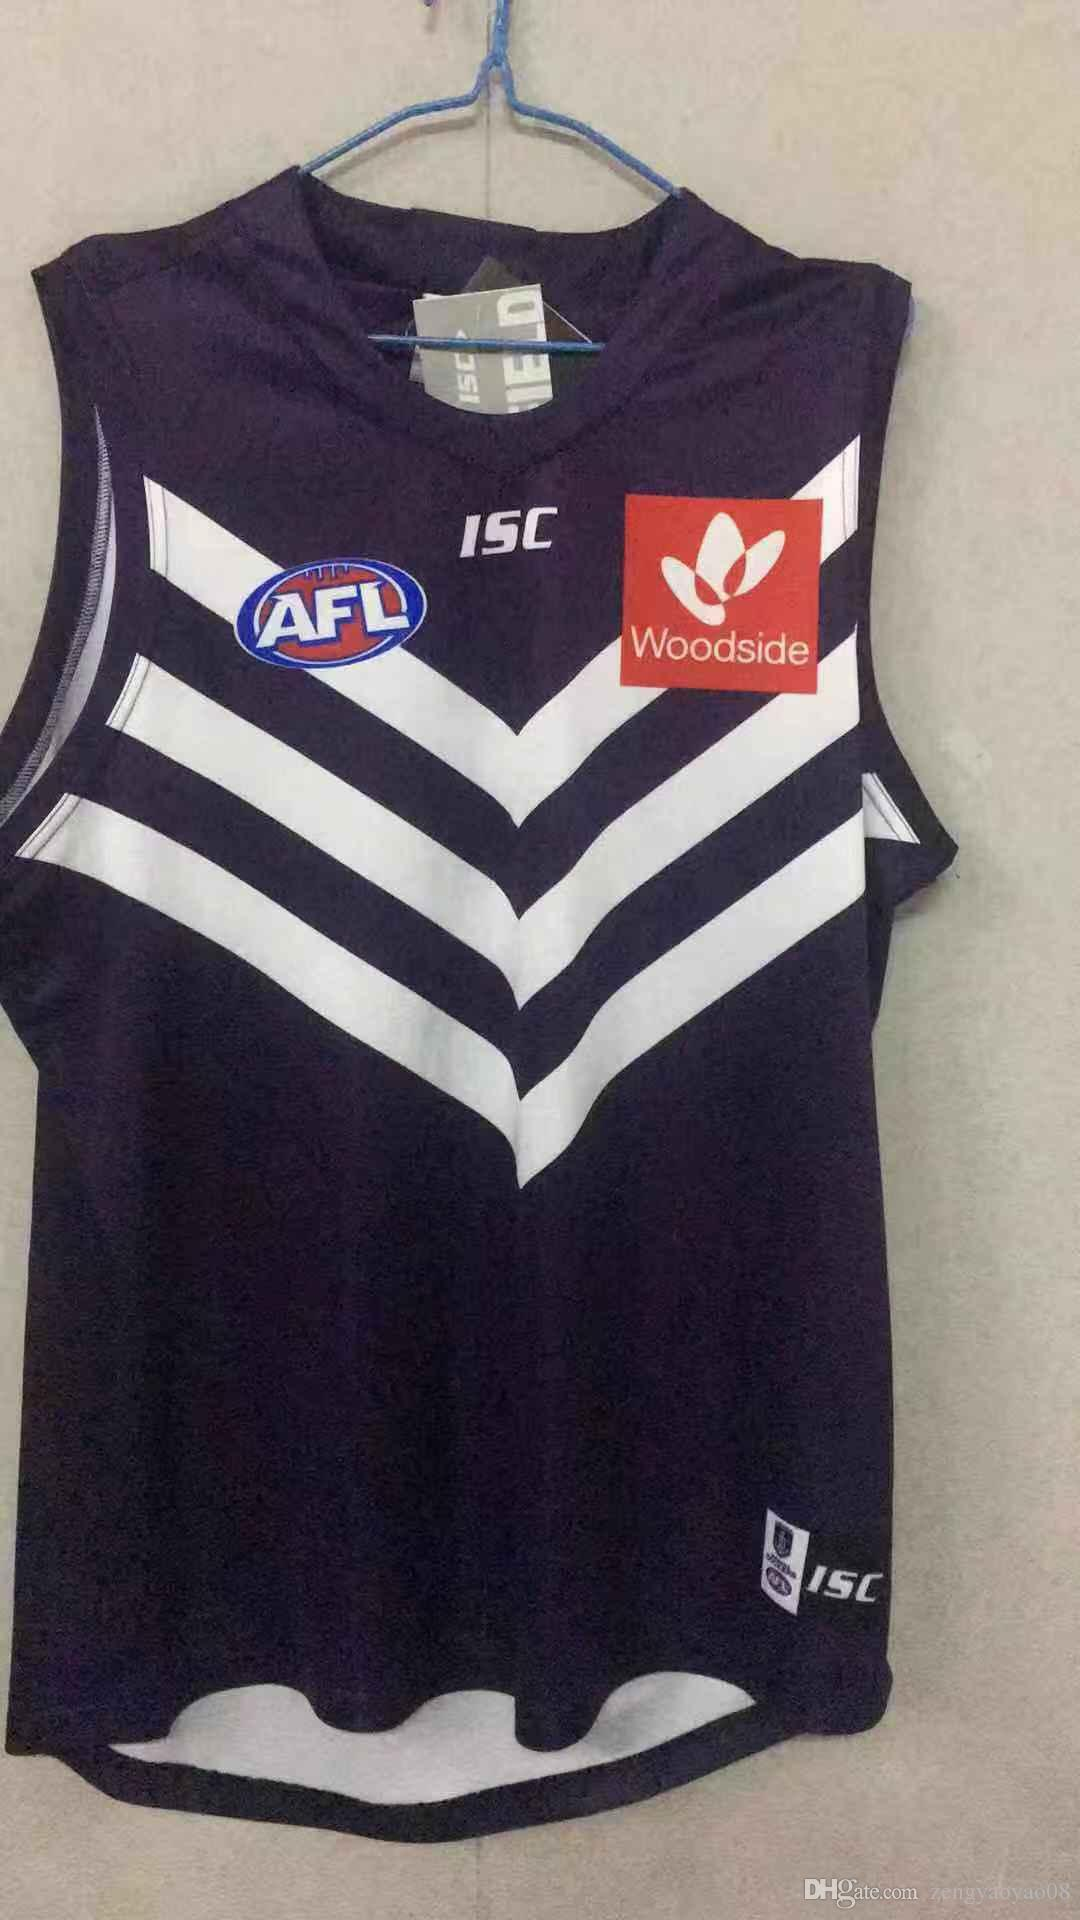 2019 FREMANTLE DOCKERS GUERNSEY West Coast Eagles Guernsey Adelaide Crows Collingwood Magpies casa Eddie Betts AFL tamanho Camisa S-3XL